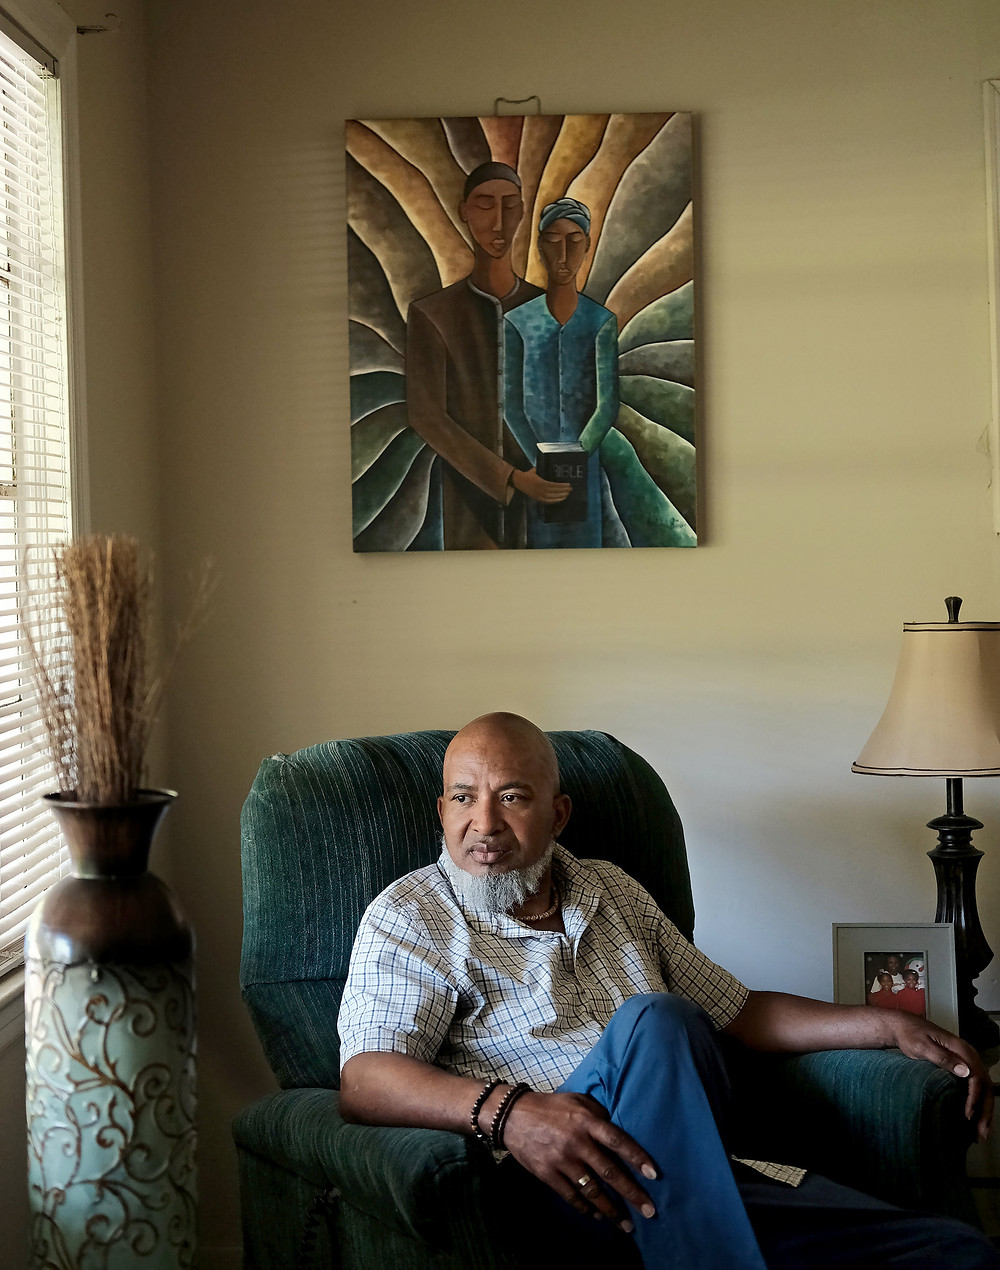 Cedric Sturdevant at home in Jackson.Credit: Ruddy Roye for The New York Times